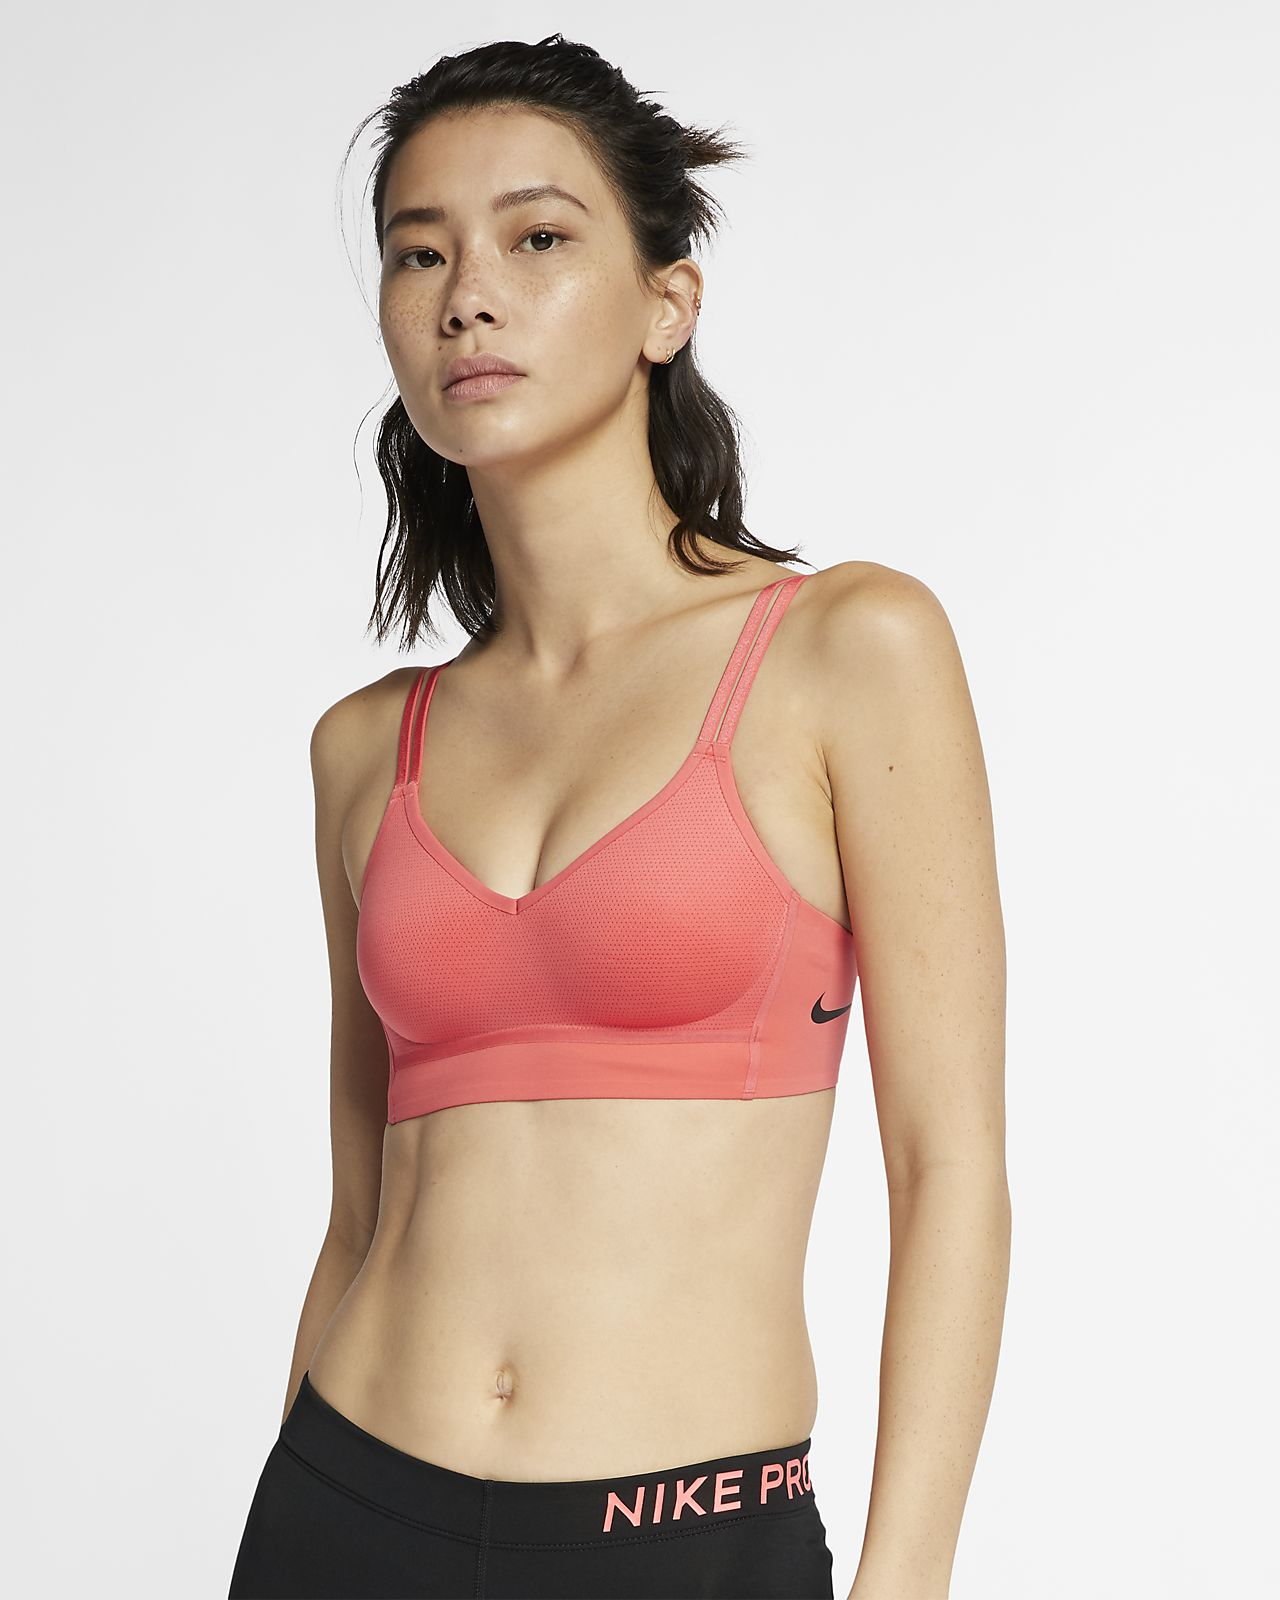 488eed433d Nike Indy Breathe Women s Light Support Sports Bra. Nike.com IE